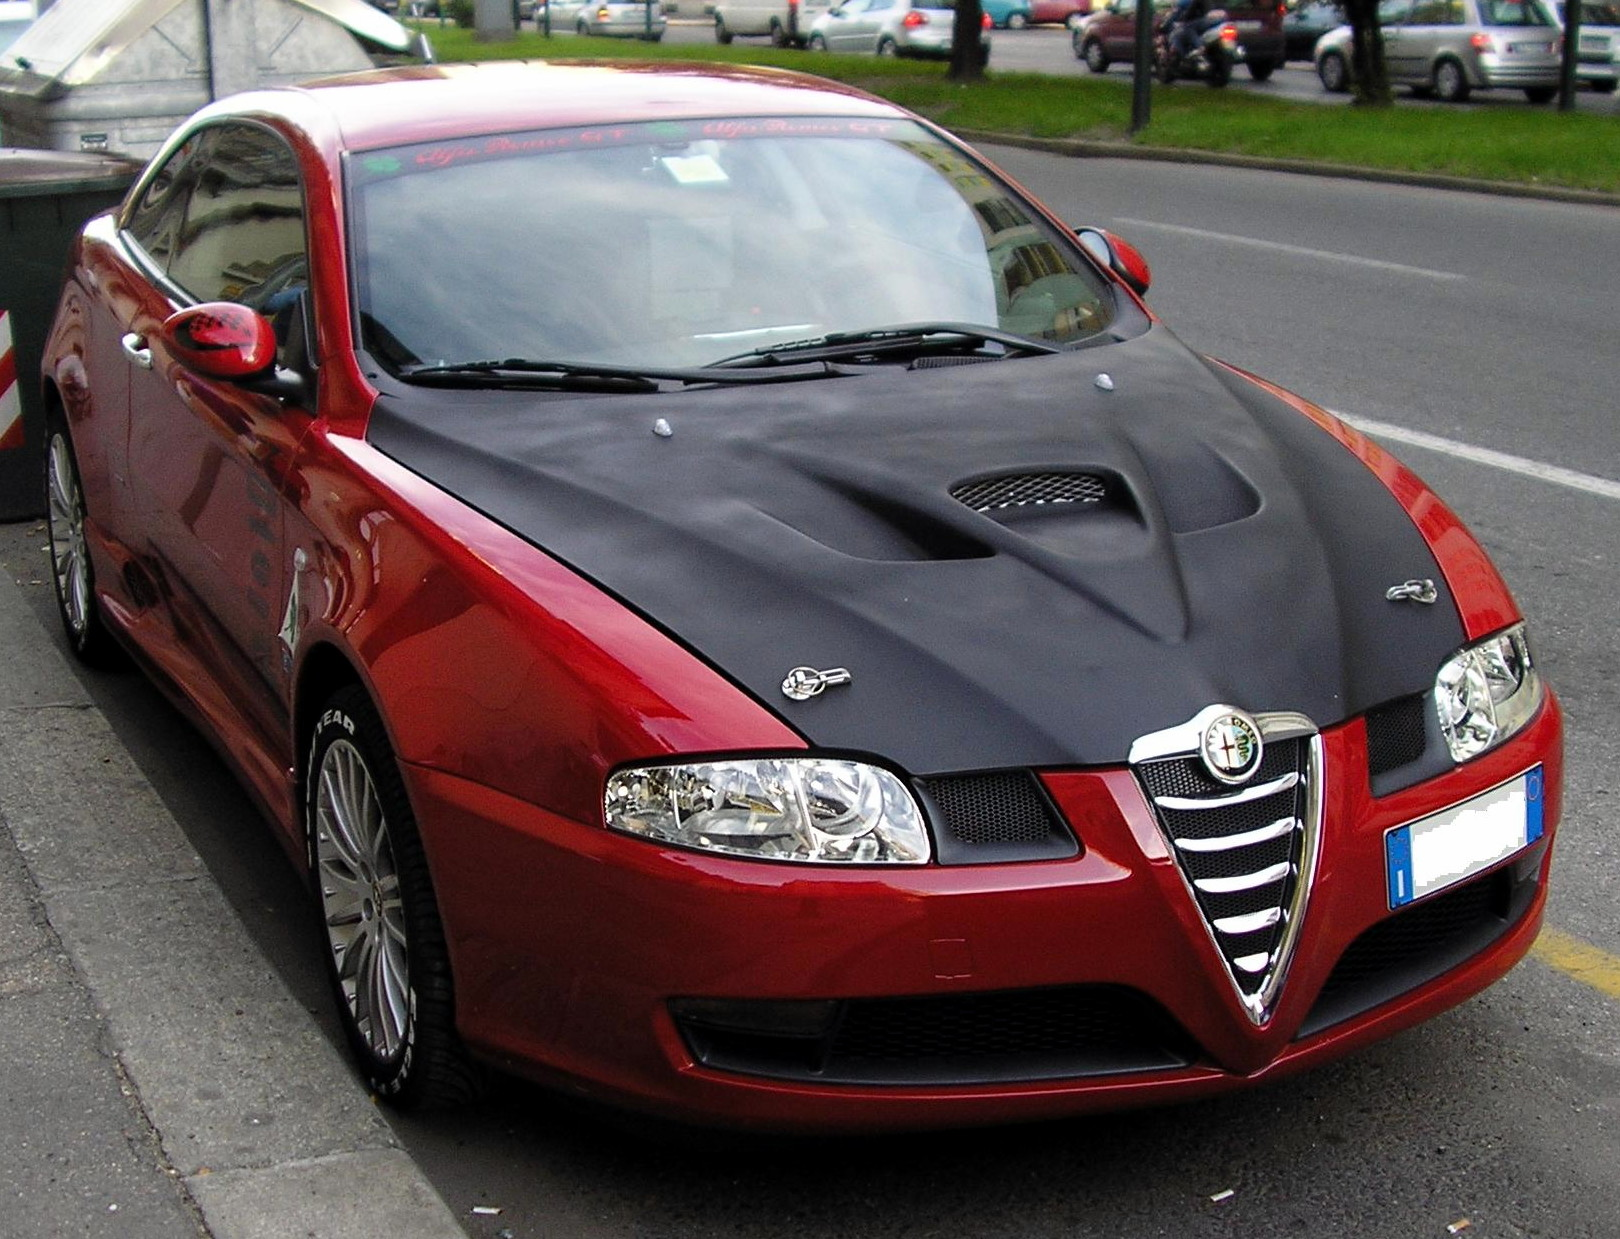 Alfa-Romeo GT photo 11